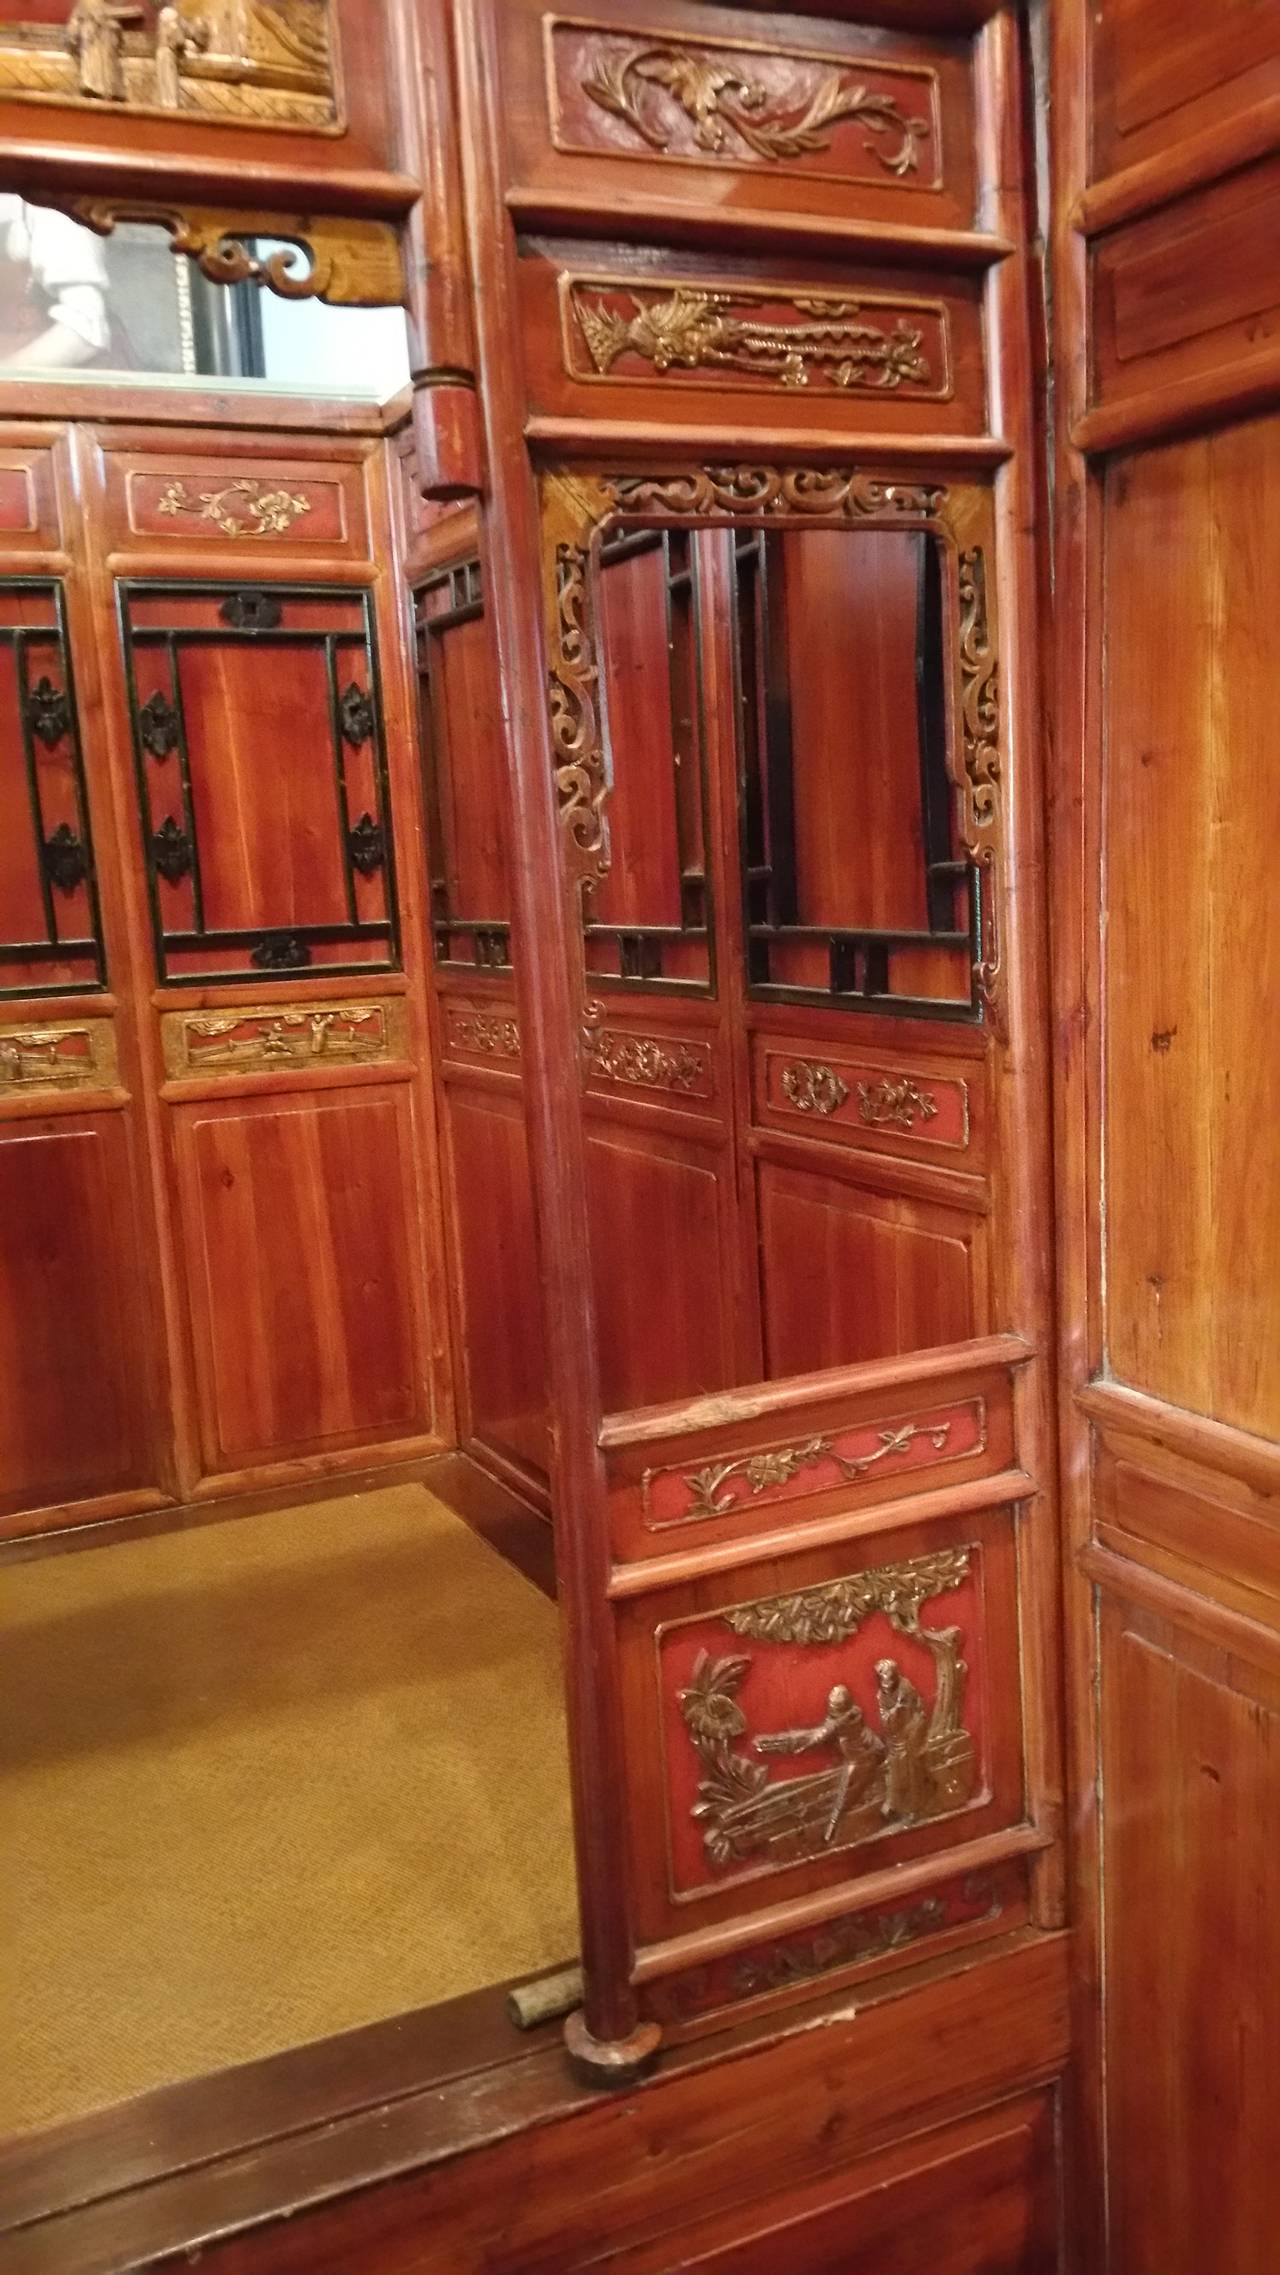 Mid to late 19th century, elaborately carved, antique Chinese bed Chambers was used to greet visitors and usually was furnished with two chairs and a center table: from which tea, wine and food were served. The front alcove section of the bed